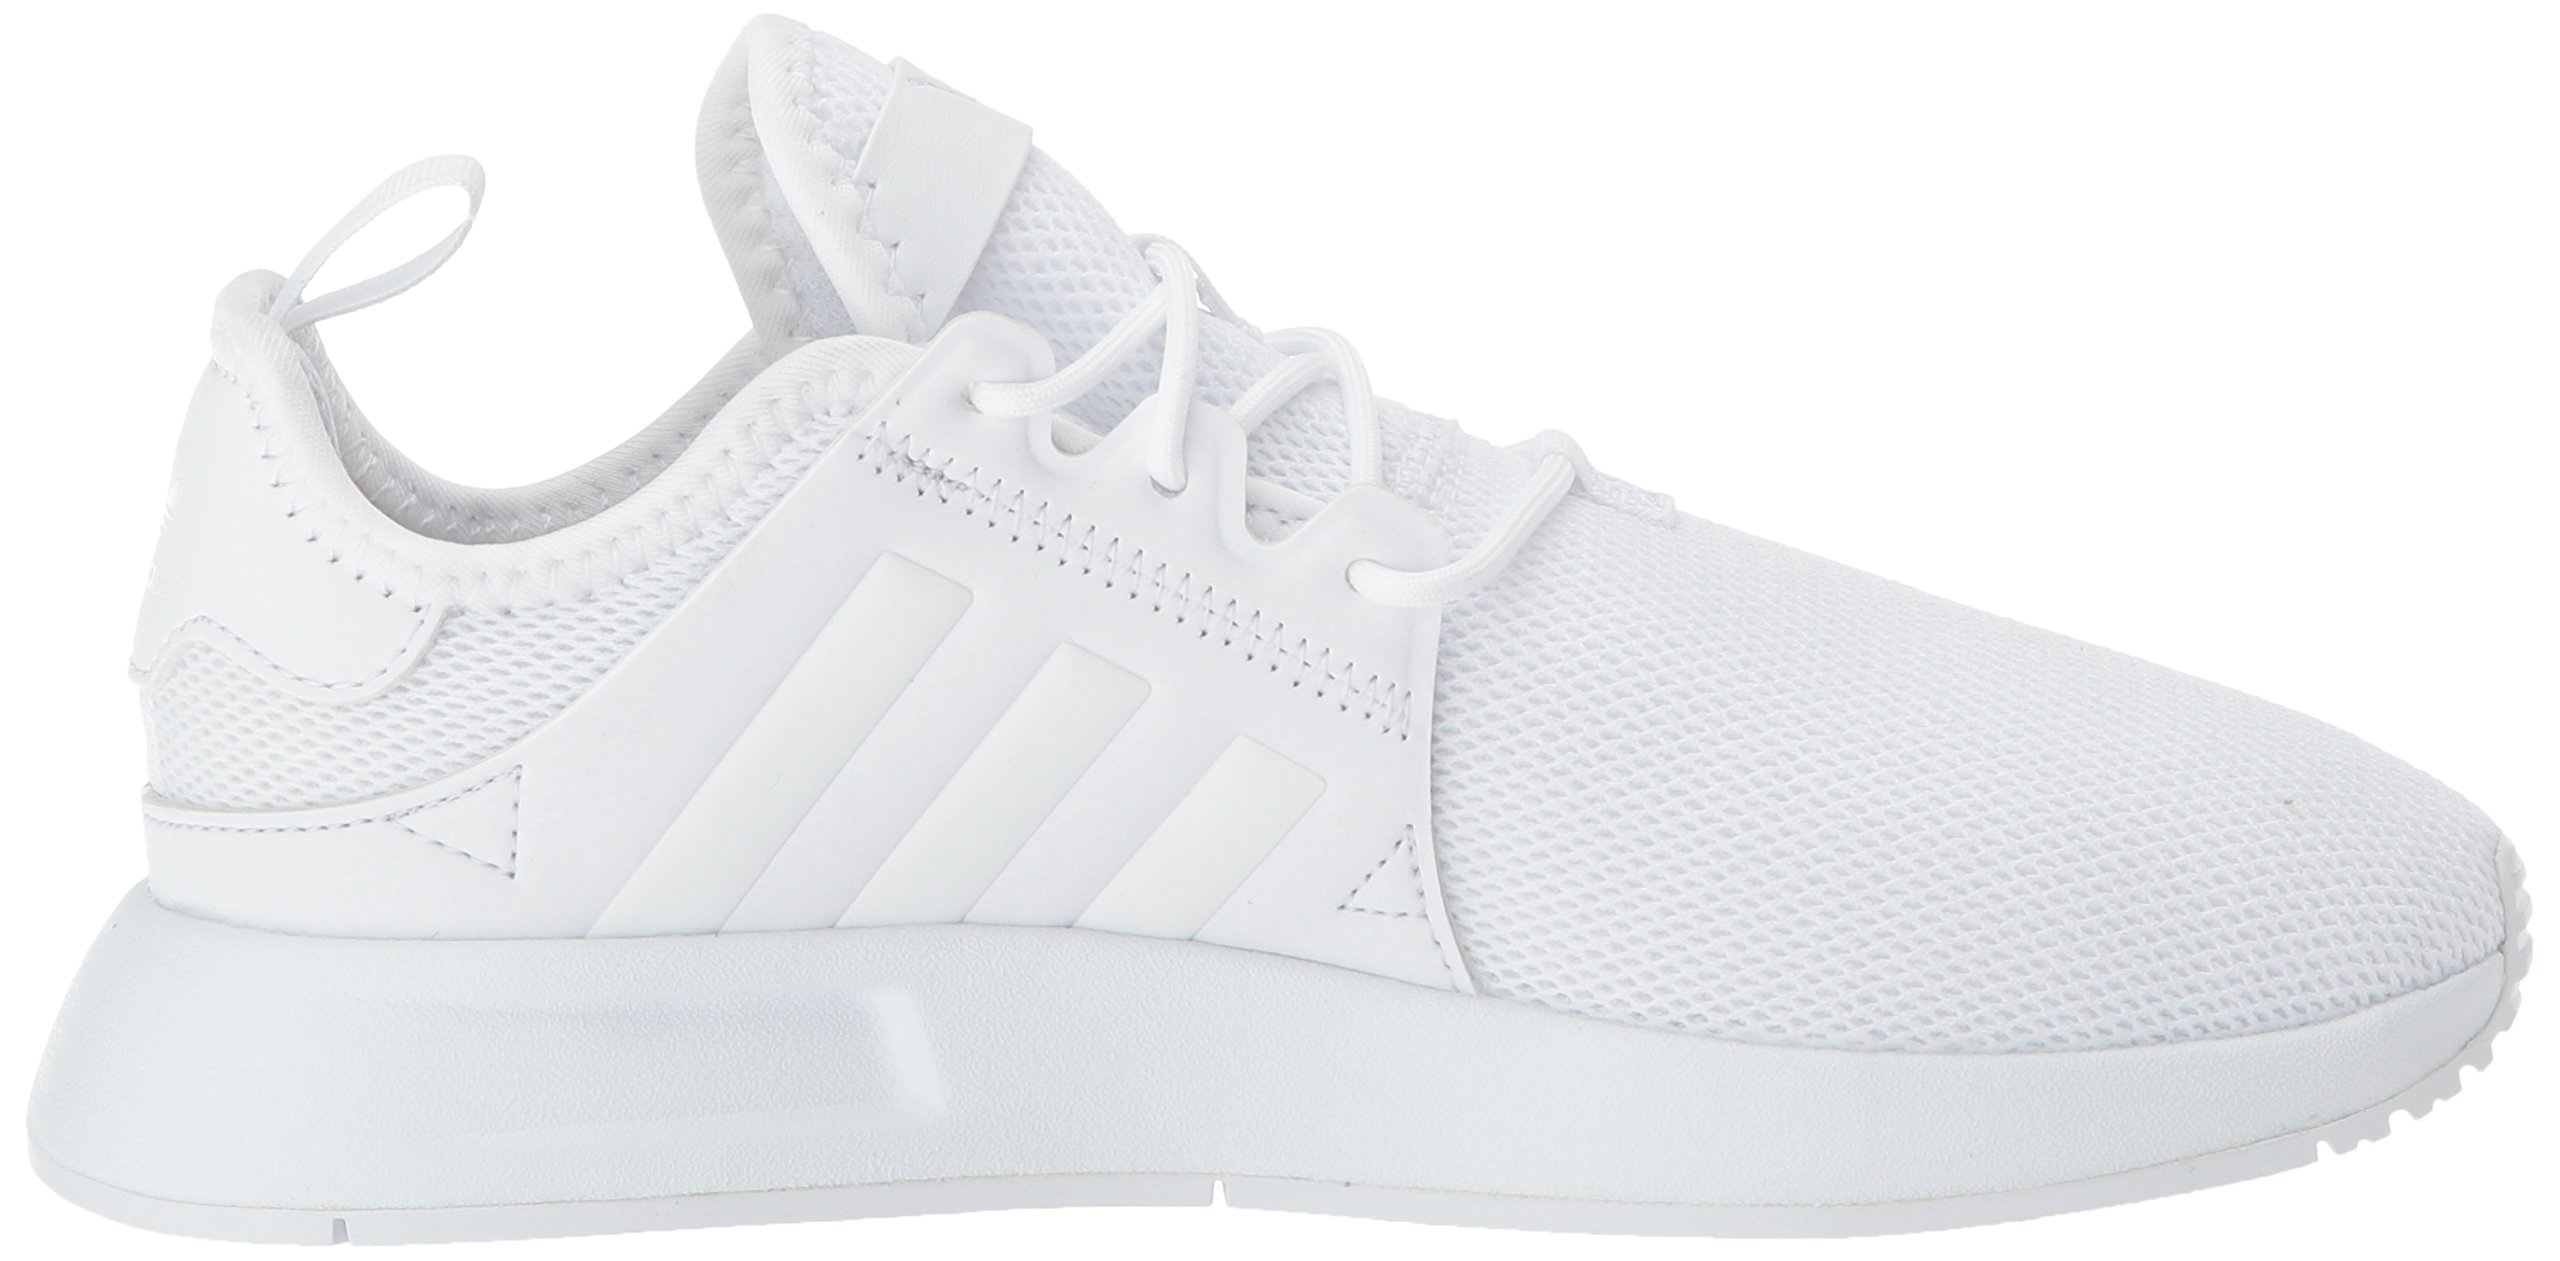 adidas Originals Boys' X_PLR C, White/White/White, 10.5 M US Little Kid by adidas Originals (Image #7)